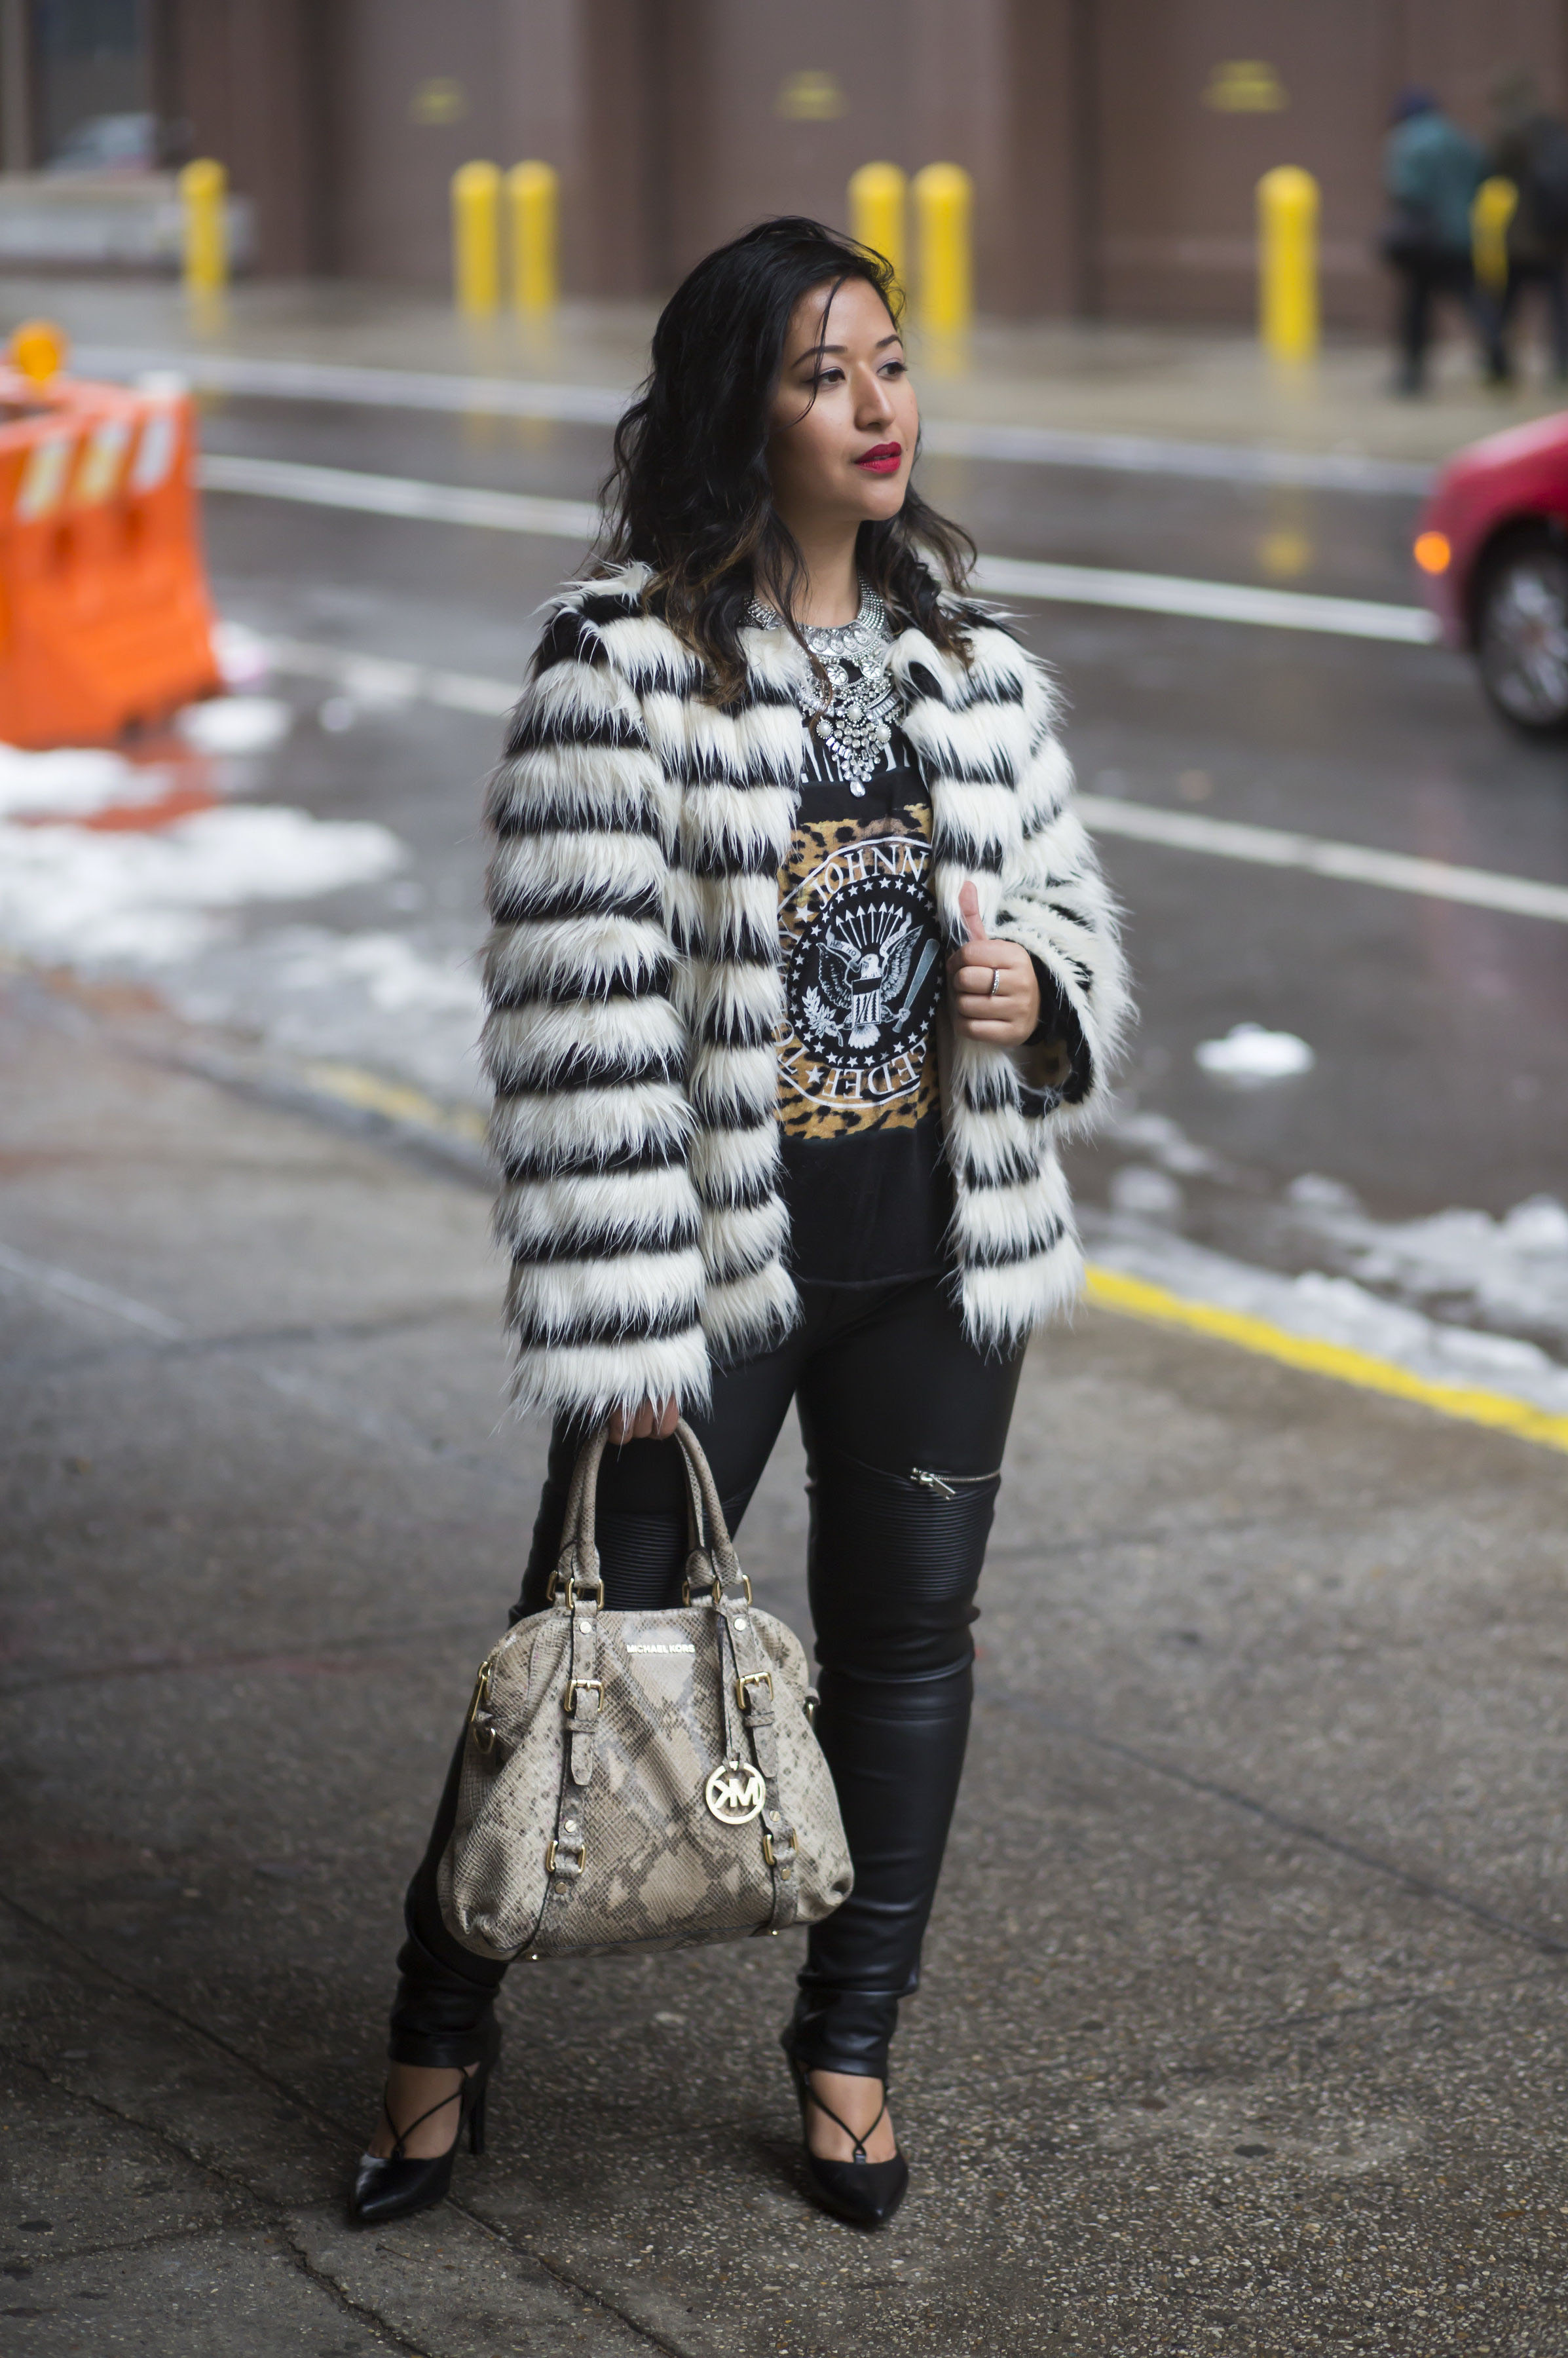 Black and White Make Me Chic jacket x Krity S